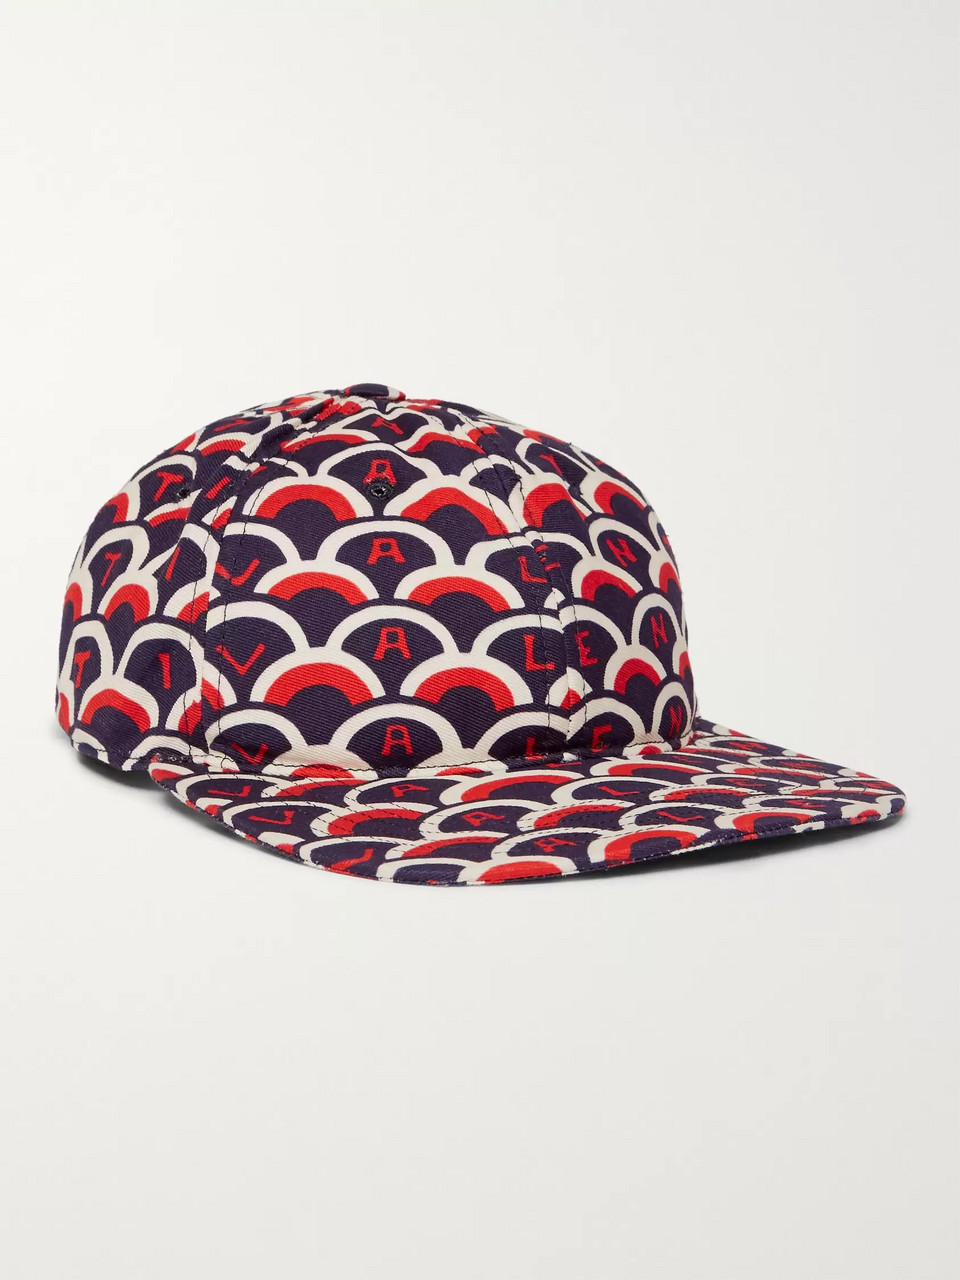 Valentino Printed Cotton-Twill Baseball Cap